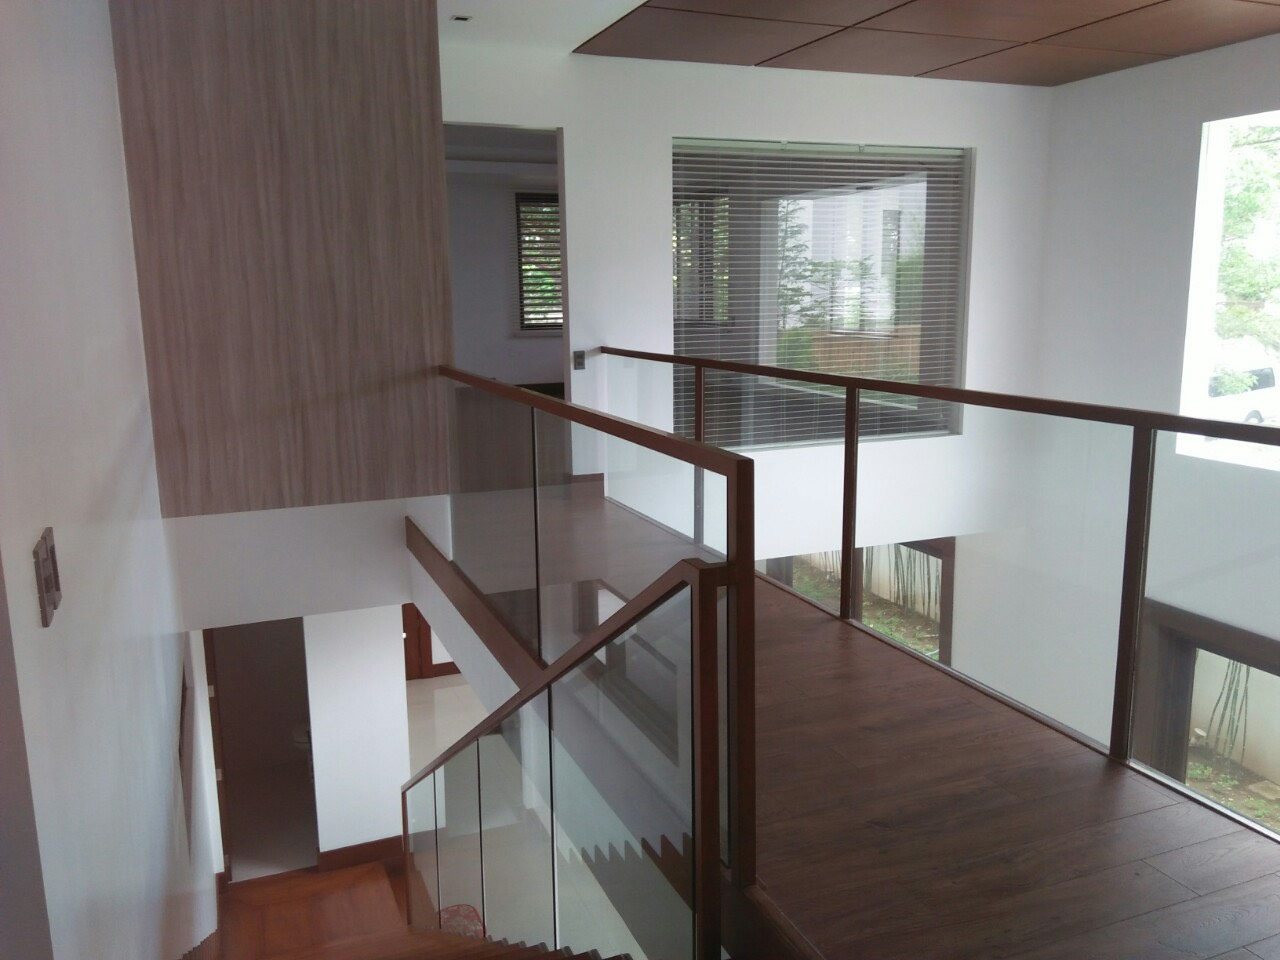 6BR House For Sale Rent, Buckingham St., Hillsborough Alabang Village, Muntinlupa City 2nd Floor